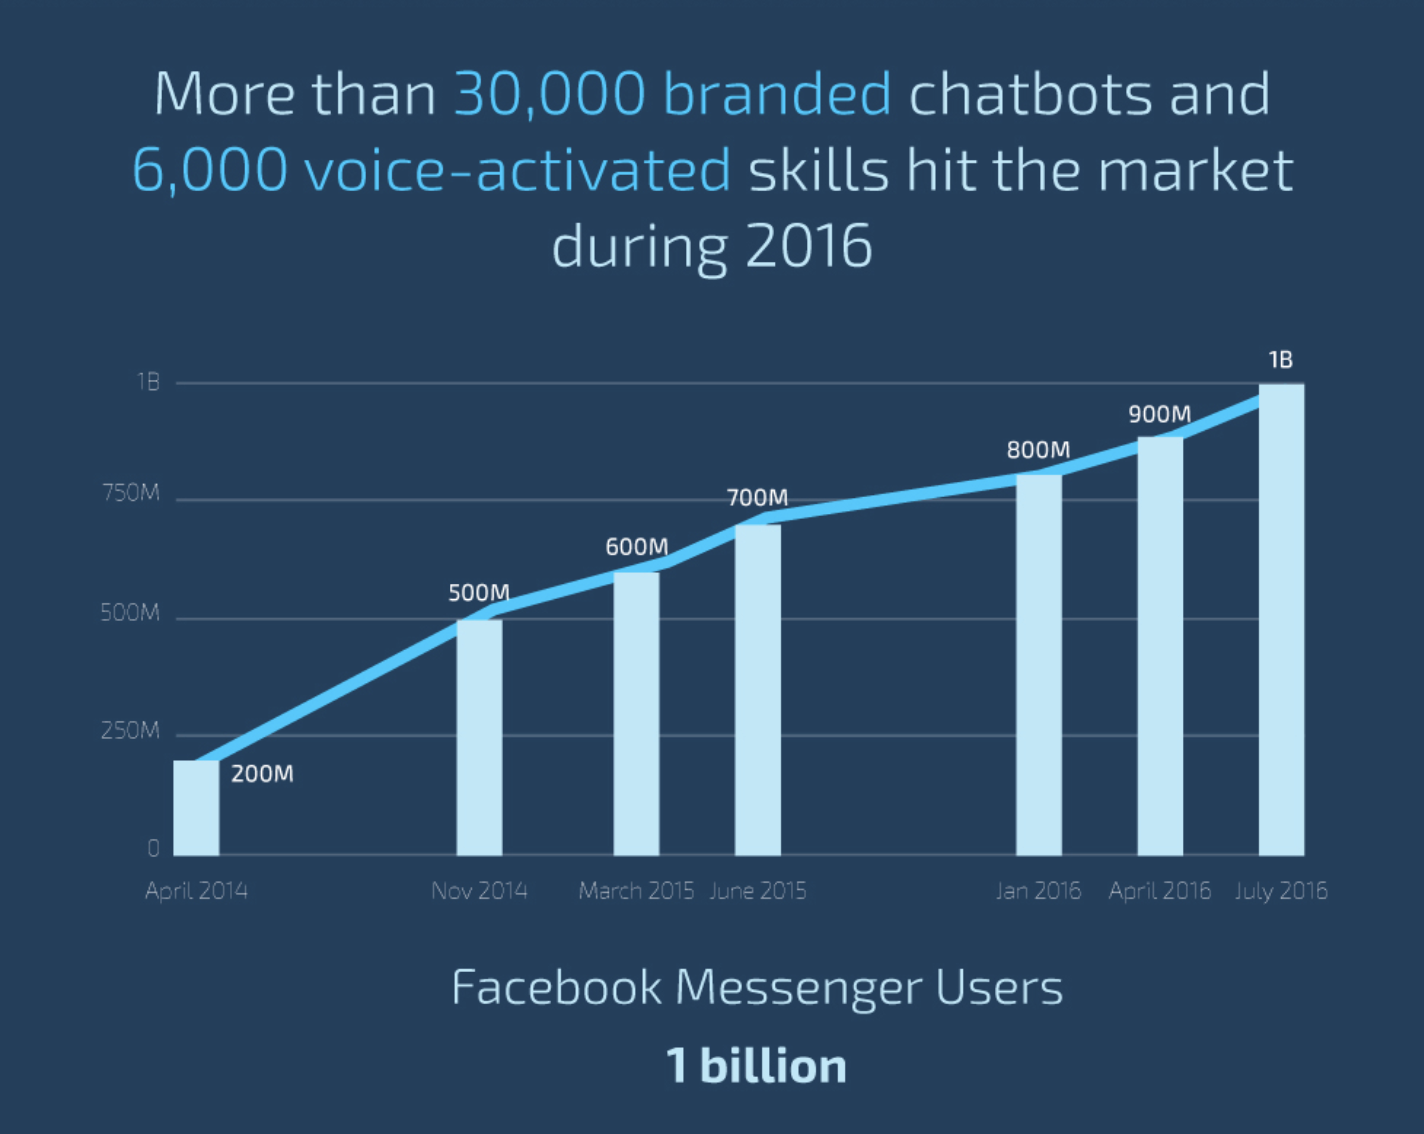 chatbot is one of the lead generation technologies